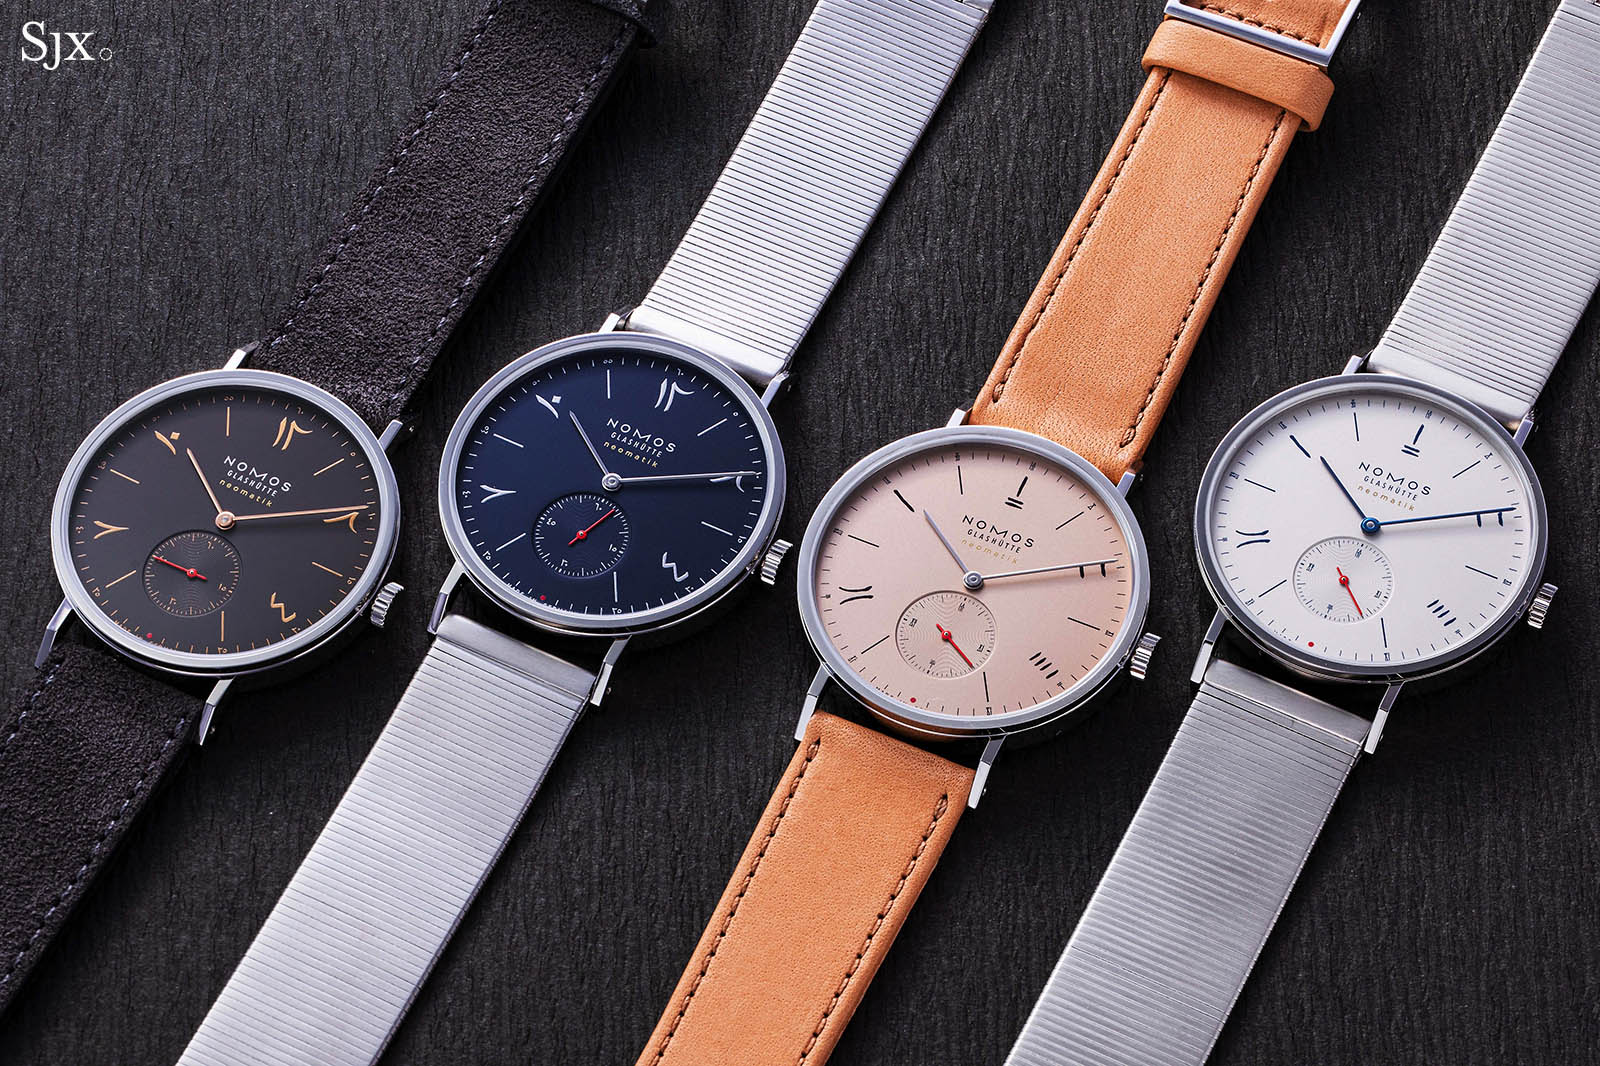 Nomos Tangente The Hour Glass Limited edition